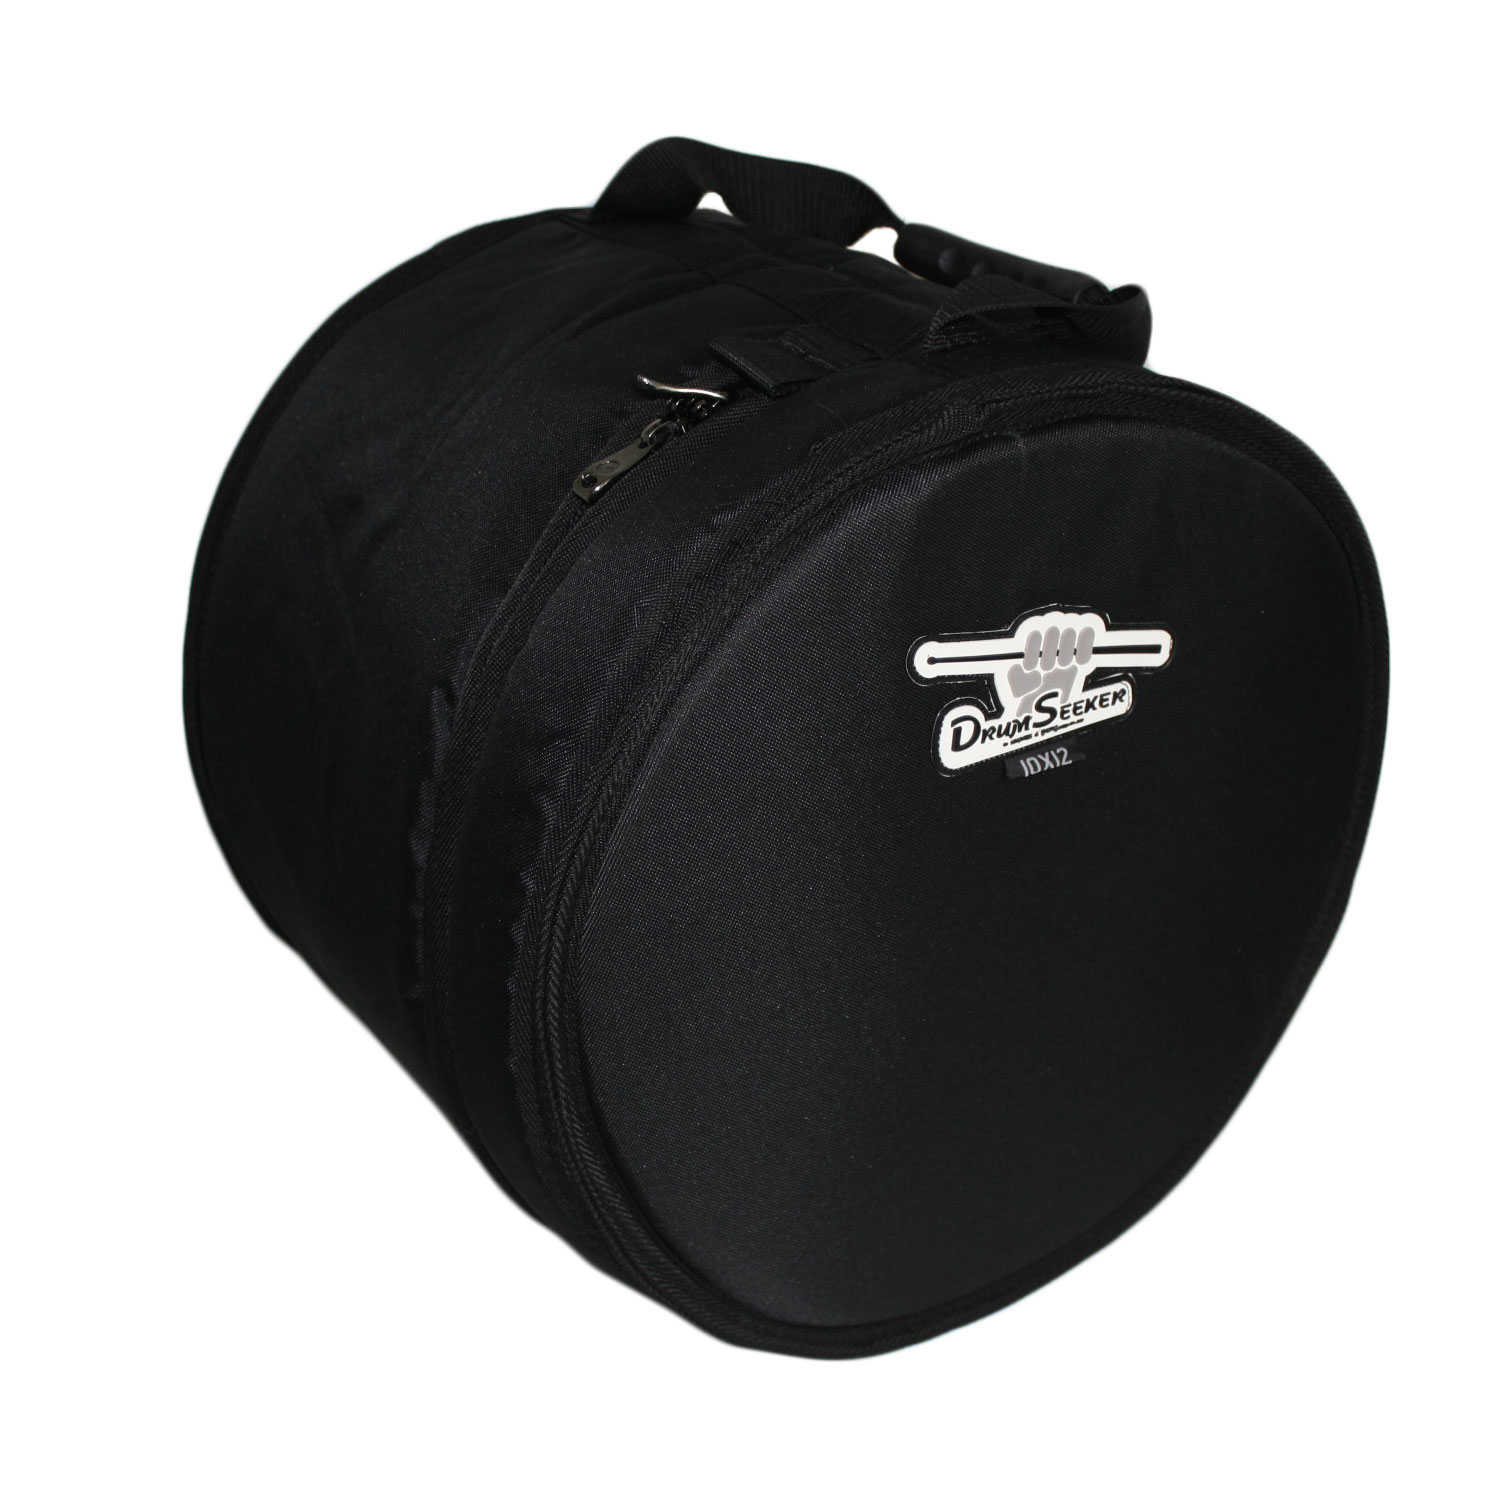 "Humes & Berg 5"" (Deep) x 14"" (Diameter) Drum Seeker Snare Bag/Soft Case"